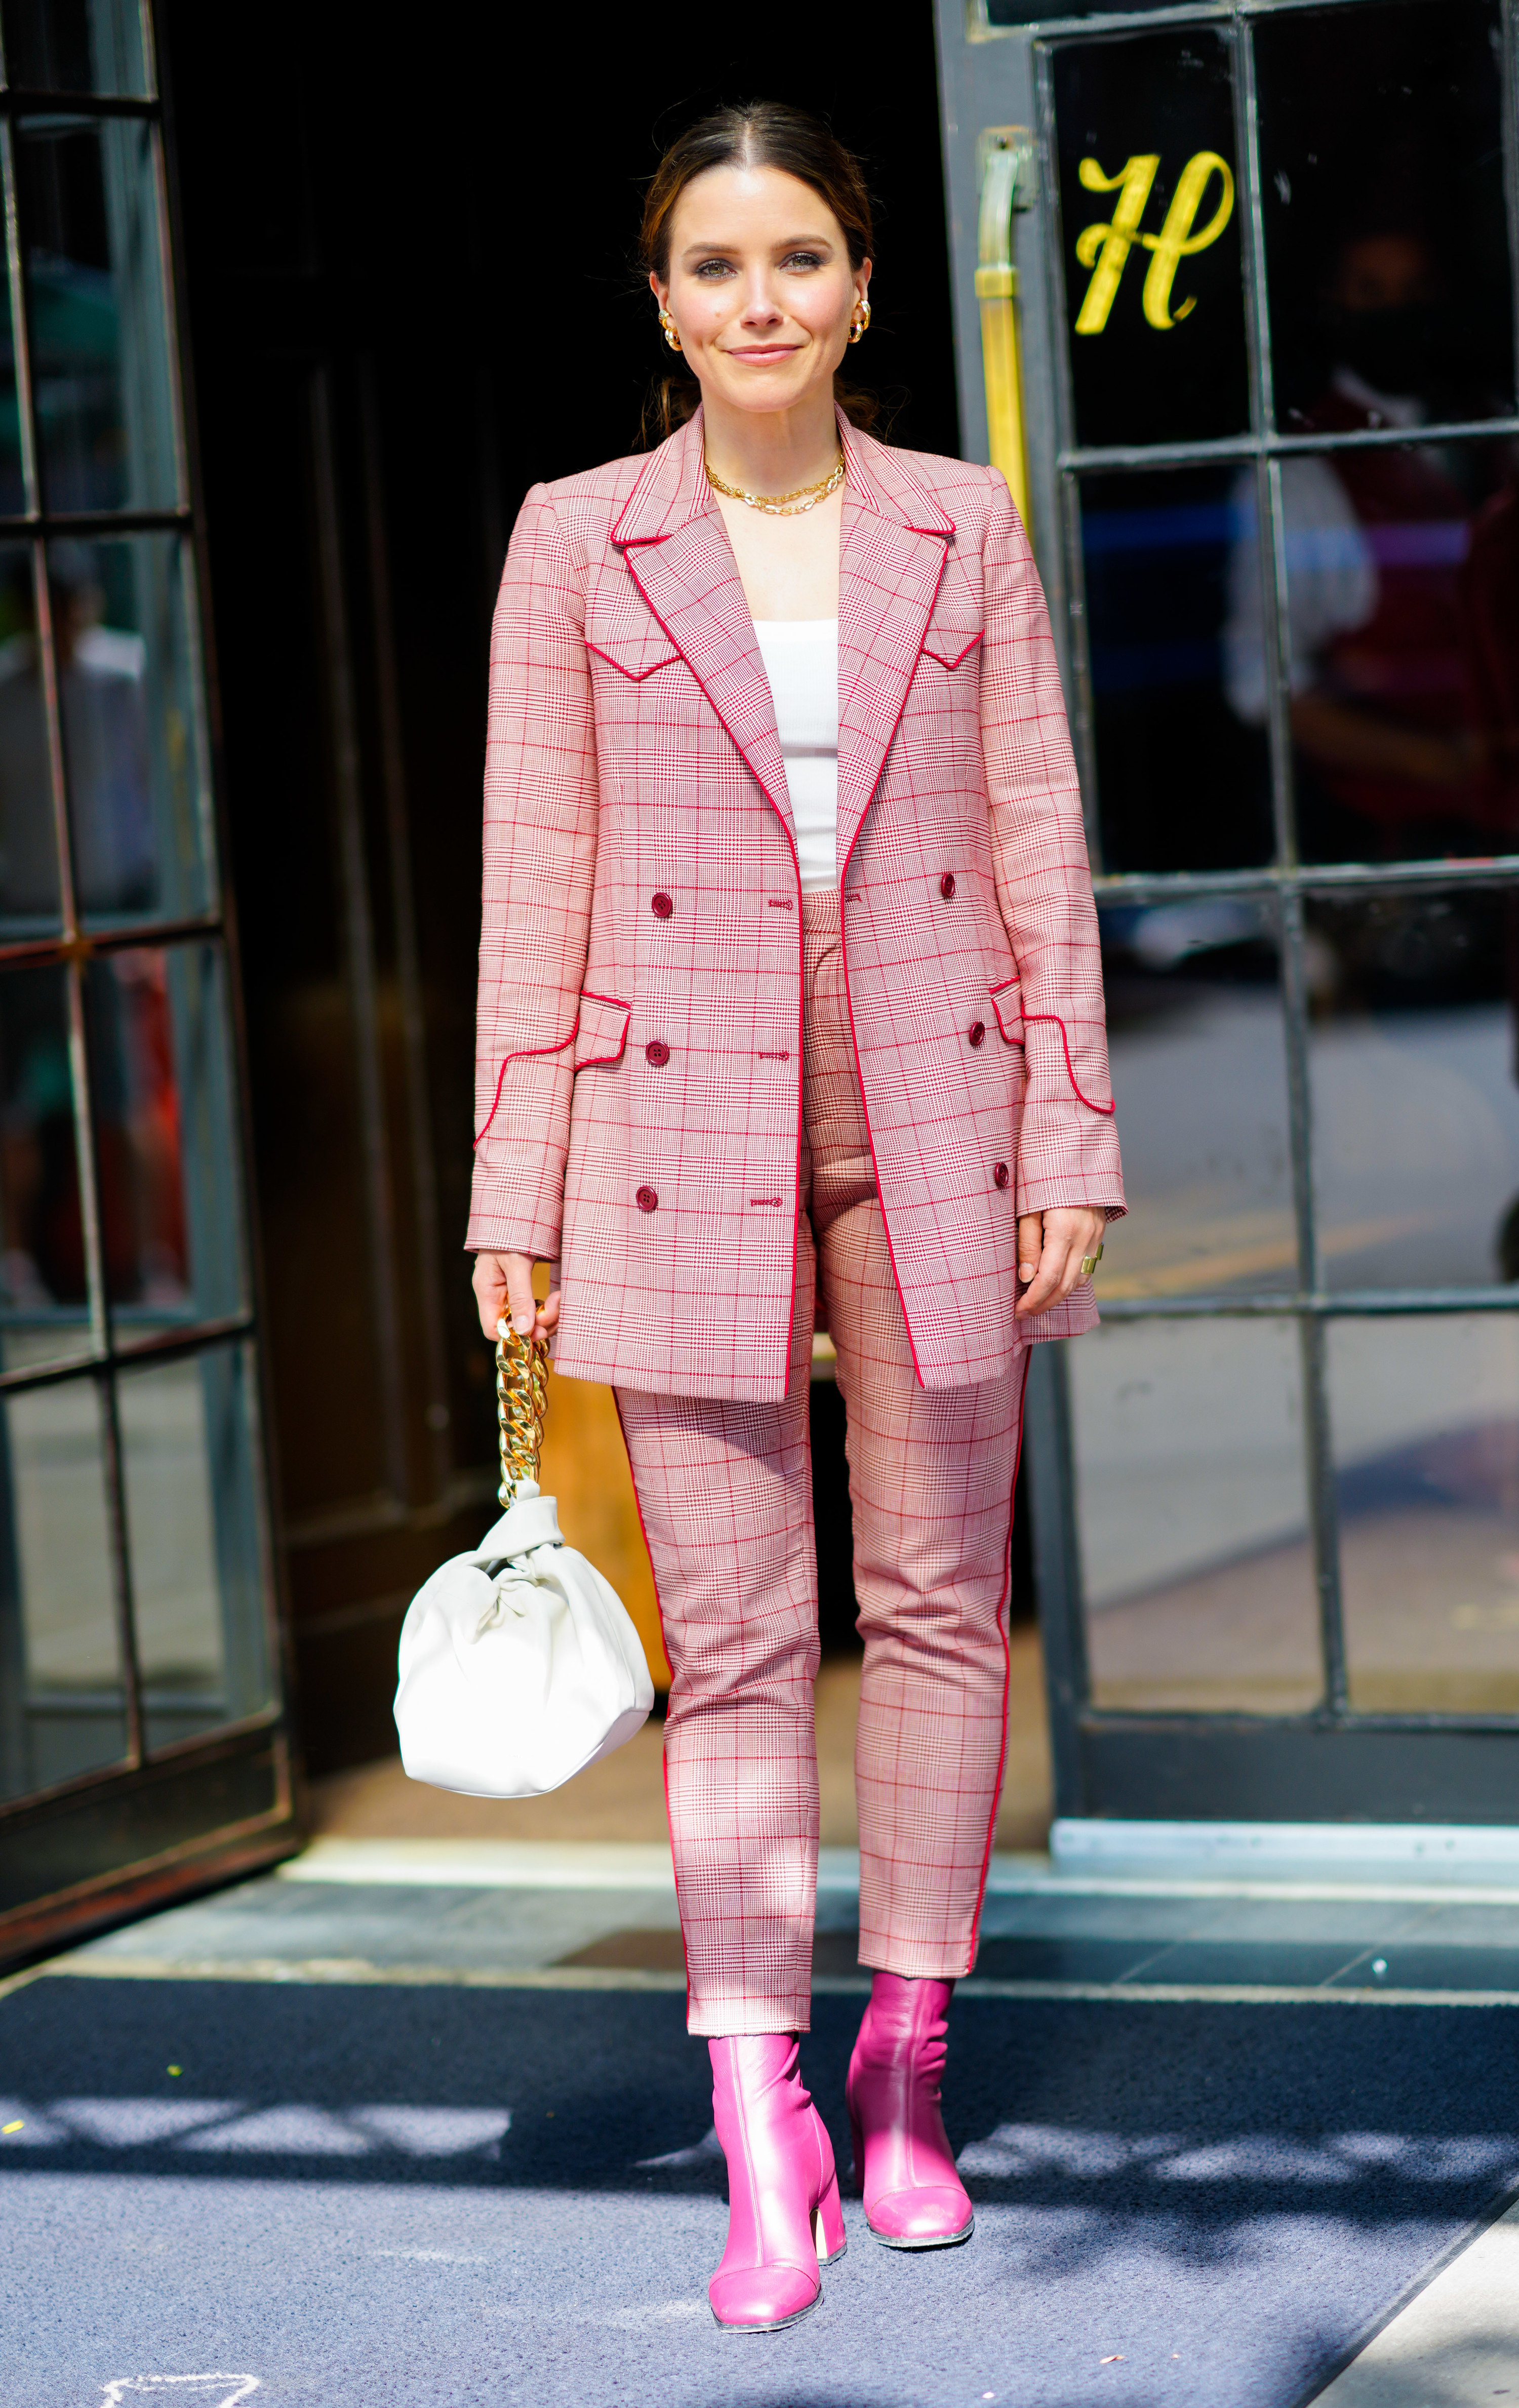 Sophia wears a pink plaid pantsuit with a gold chain necklace and bright pink boots.